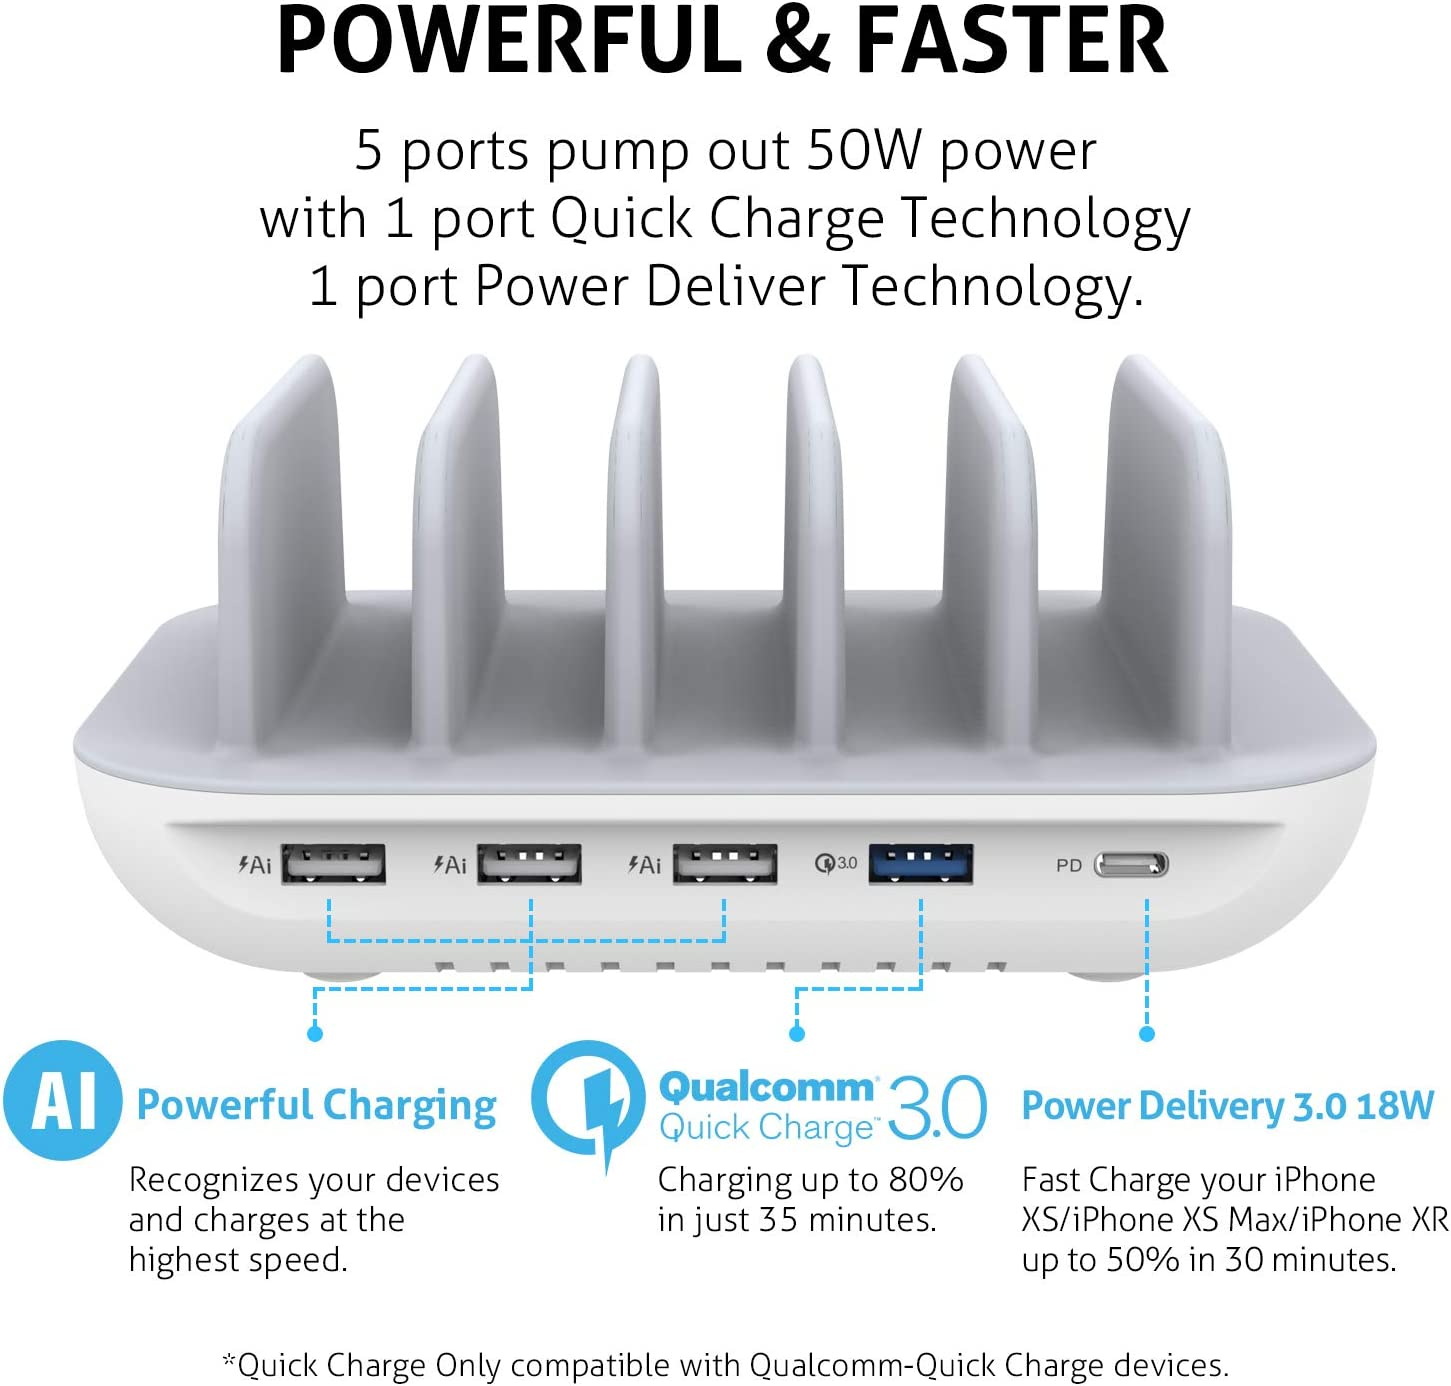 Tablets Fast Charging with Quick Charge /& Power Delivery 3.0 for Phones SooPii 50W 5-Port USB Charging Station Organizer for Multiple Devices 6 Short Cables Included white and Other Electronics